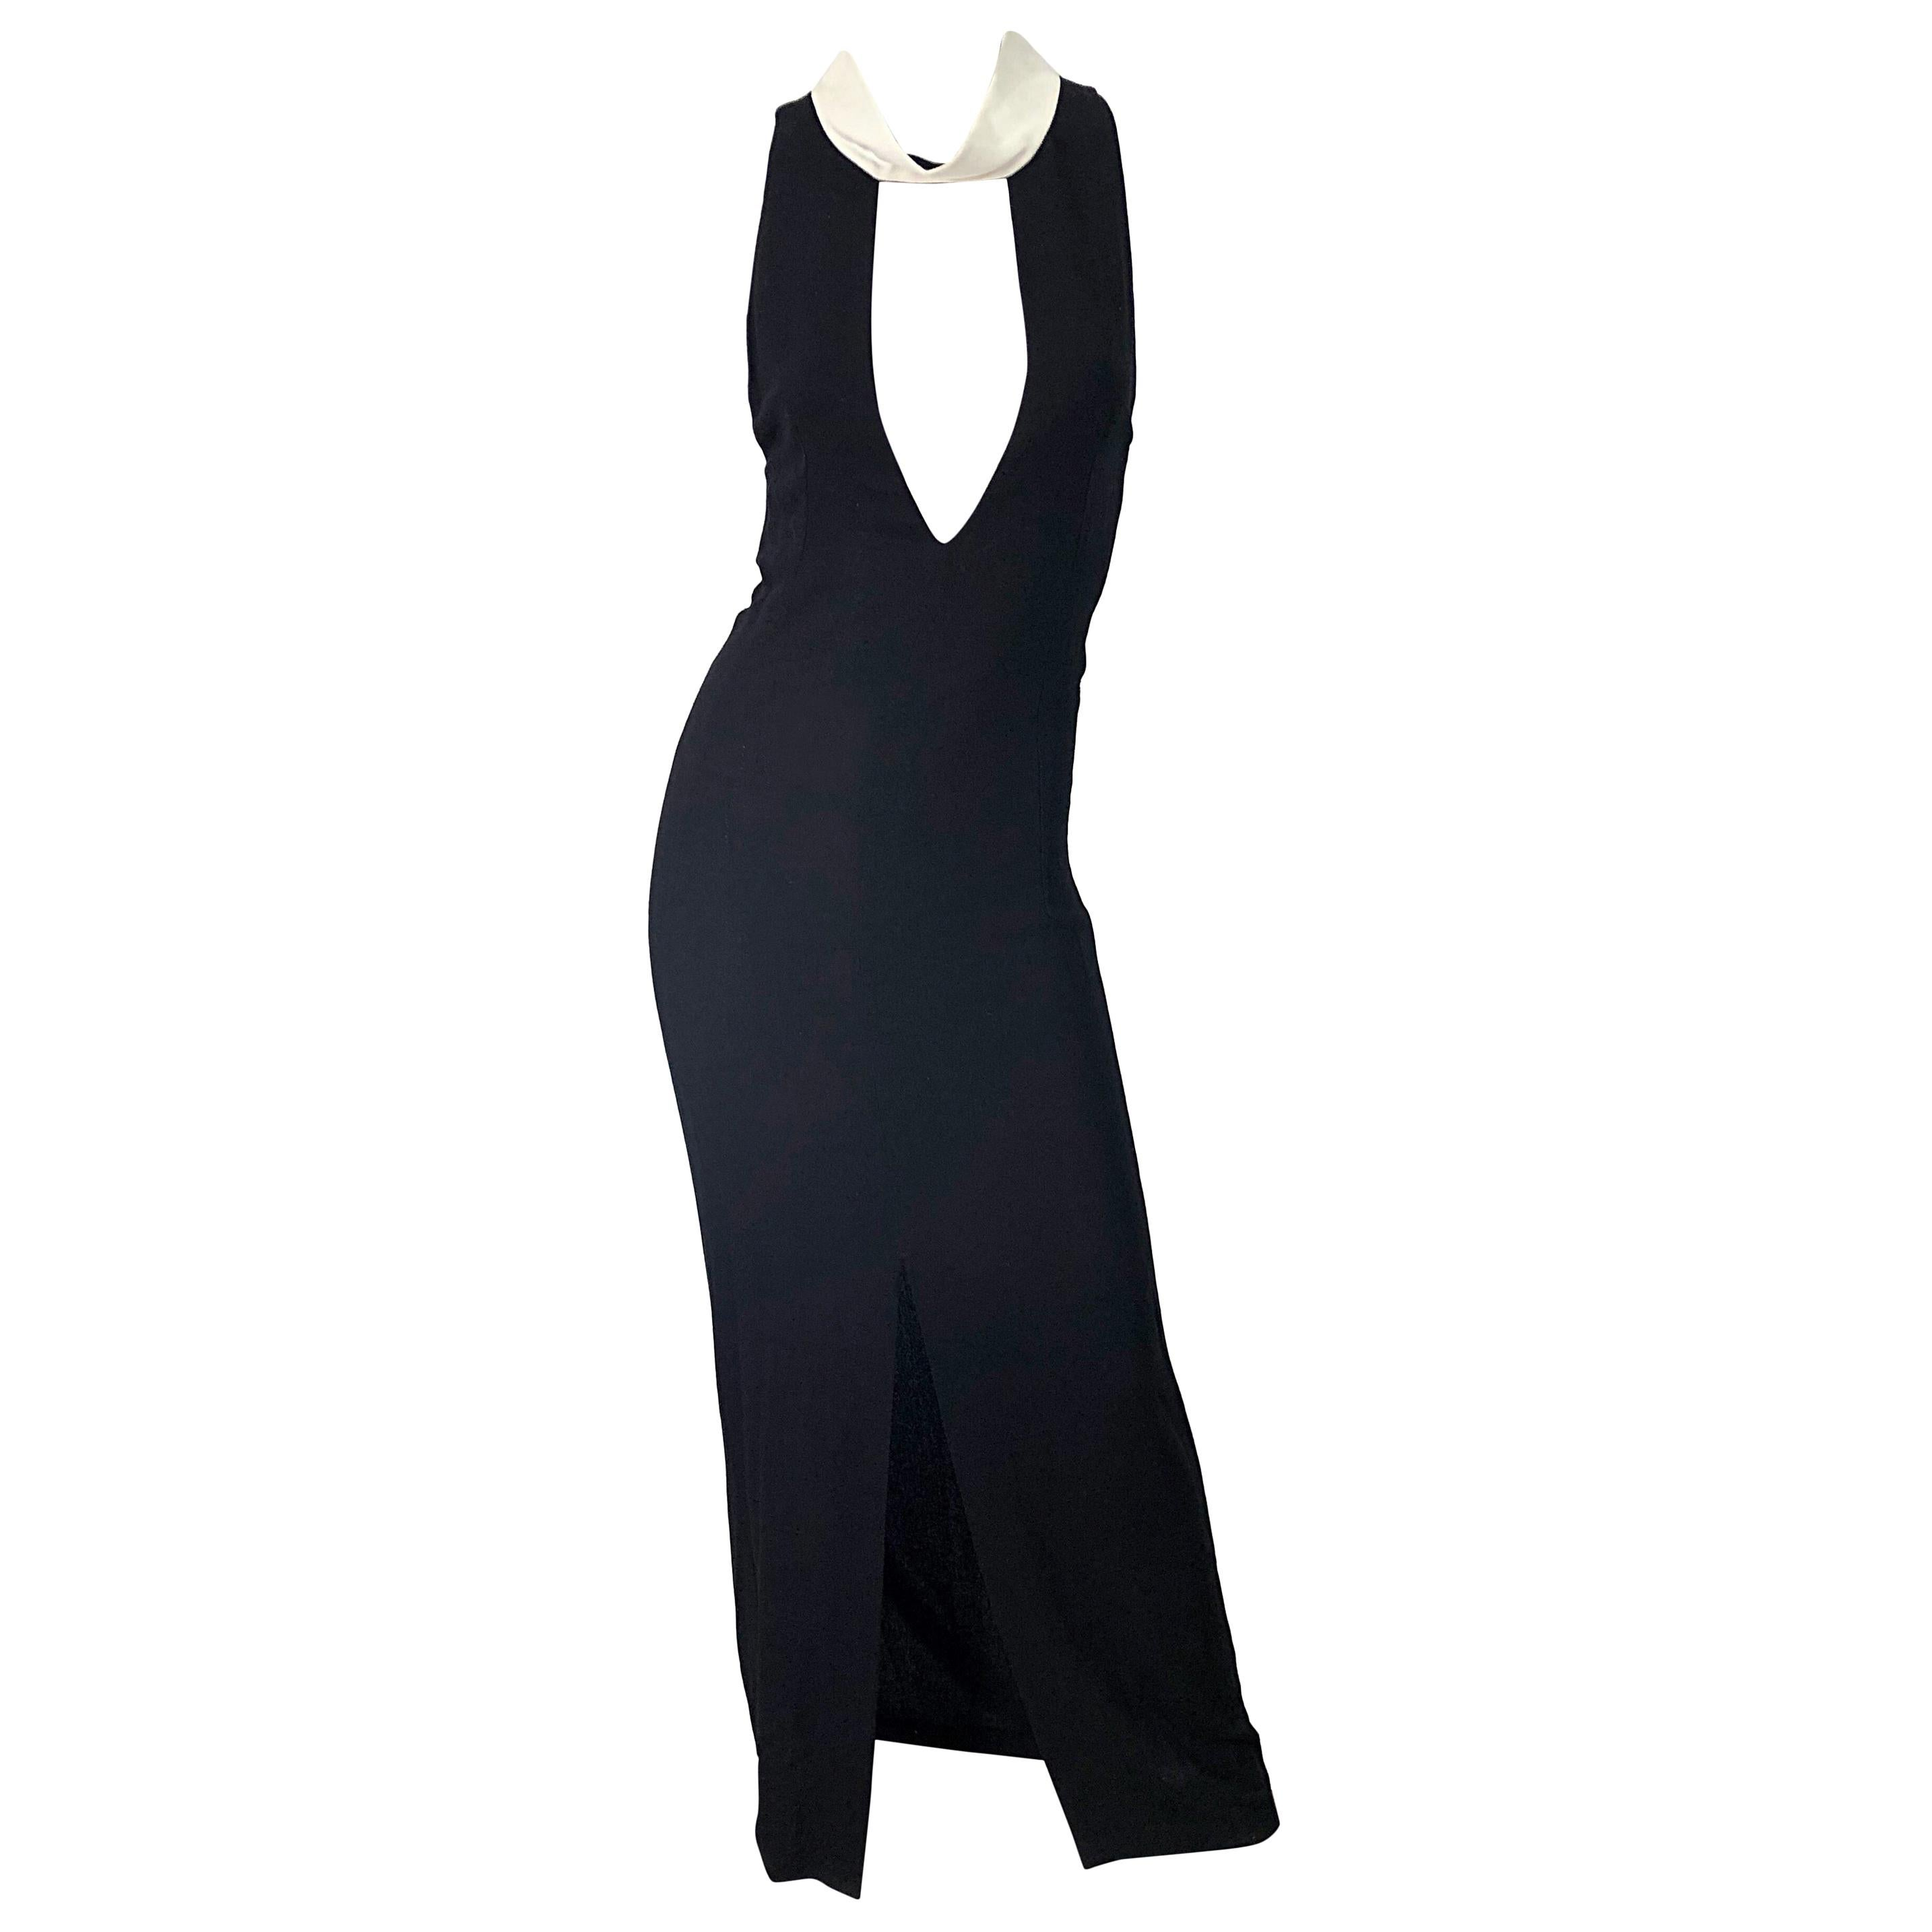 Yves Saint Laurent by Tom Ford Black and White Plunging Cut Out Sexy Gown Dress